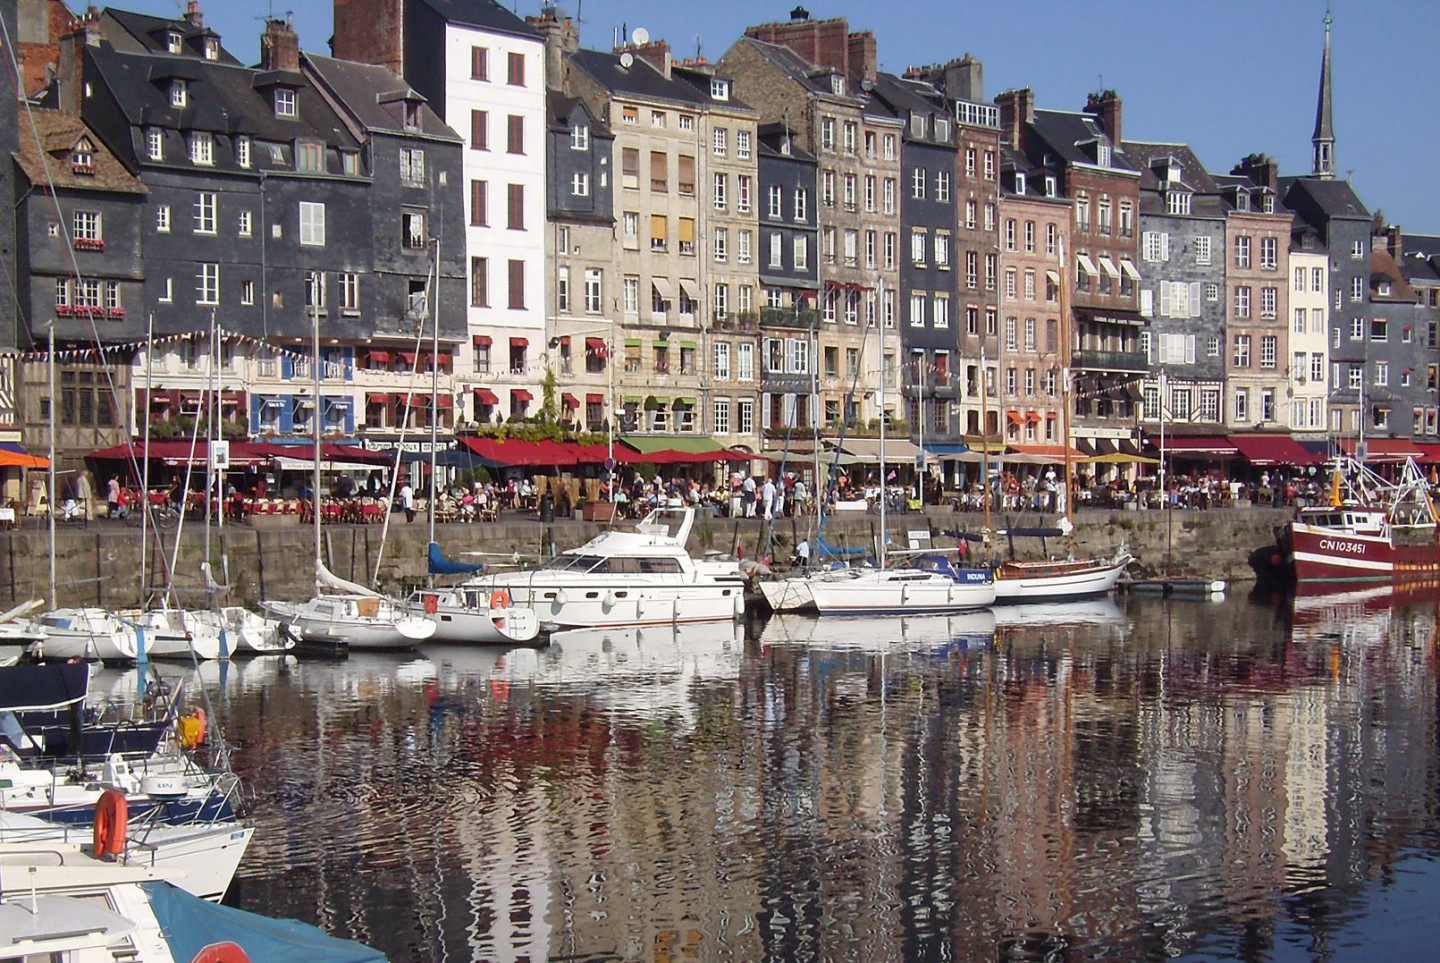 Seine river cruise French river cruise Honfleur, France ©Fred Olsen Cruise Lines